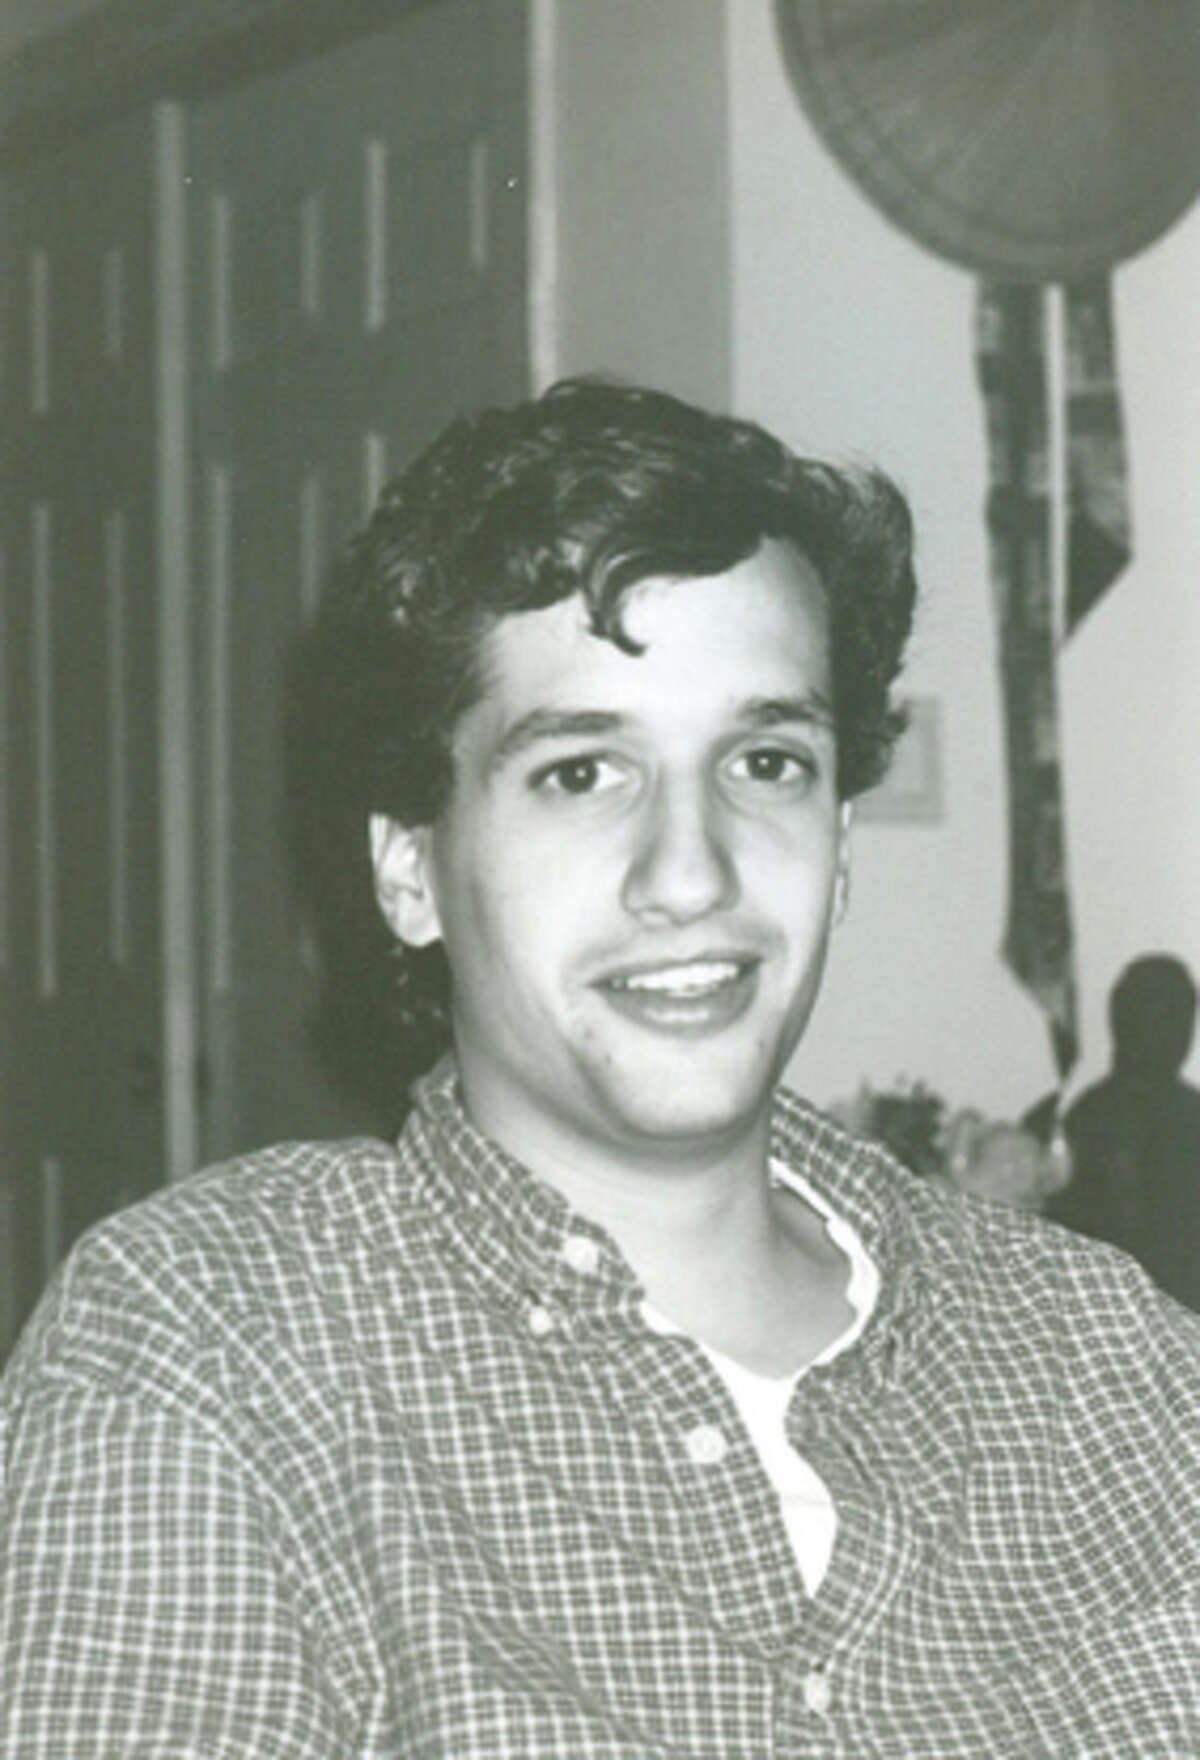 Gonzalo Guizan, killed during a police raid of a home on Dogwood Drive, in Easton, Conn. on May 18th, 2008.